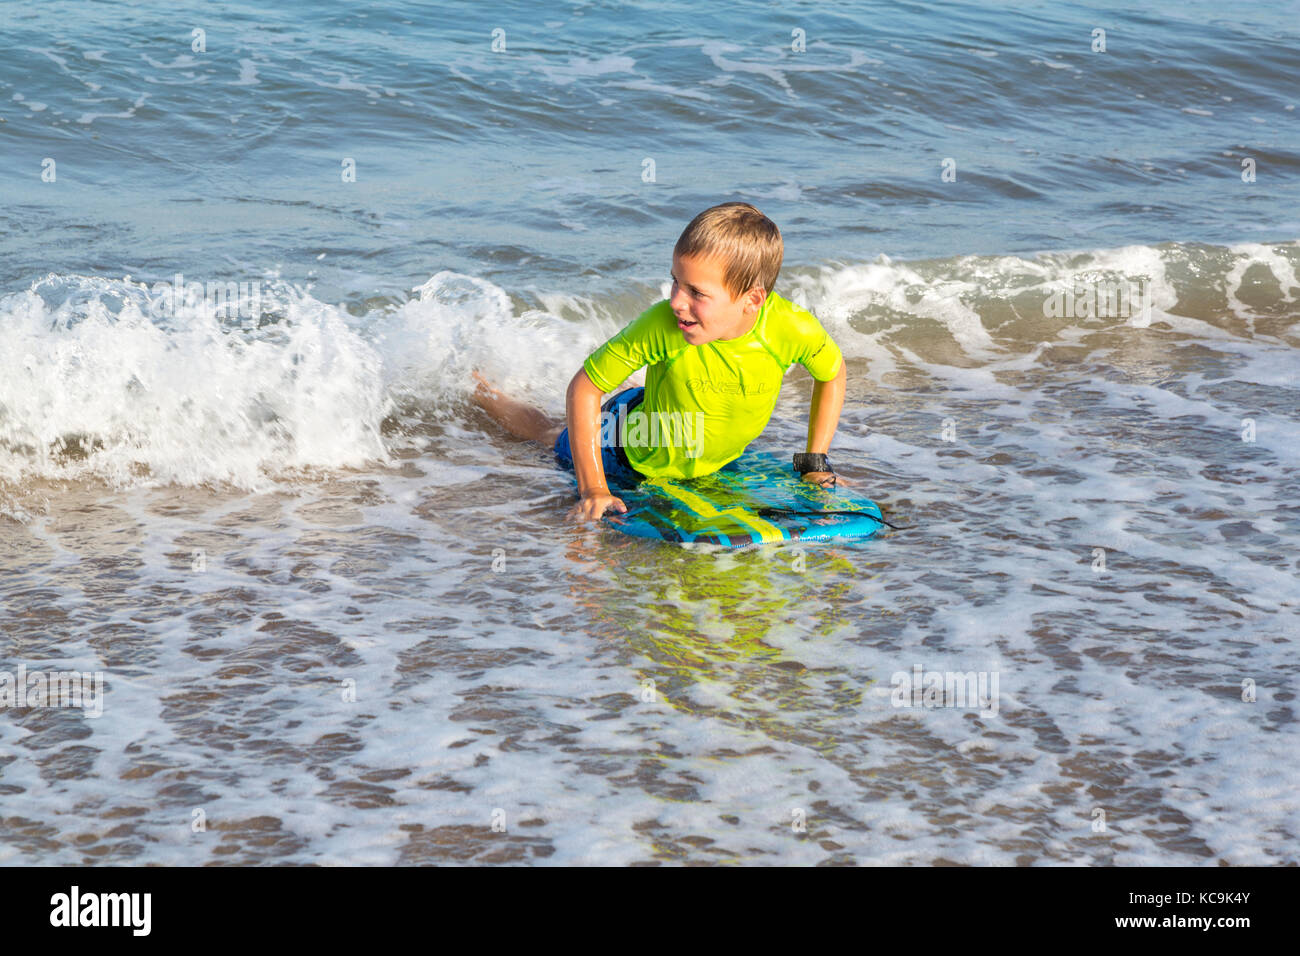 Avon, Outer Banks, North Carolina, USA.  Young Boy with his Boogie Board Landing on the Beach. - Stock Image